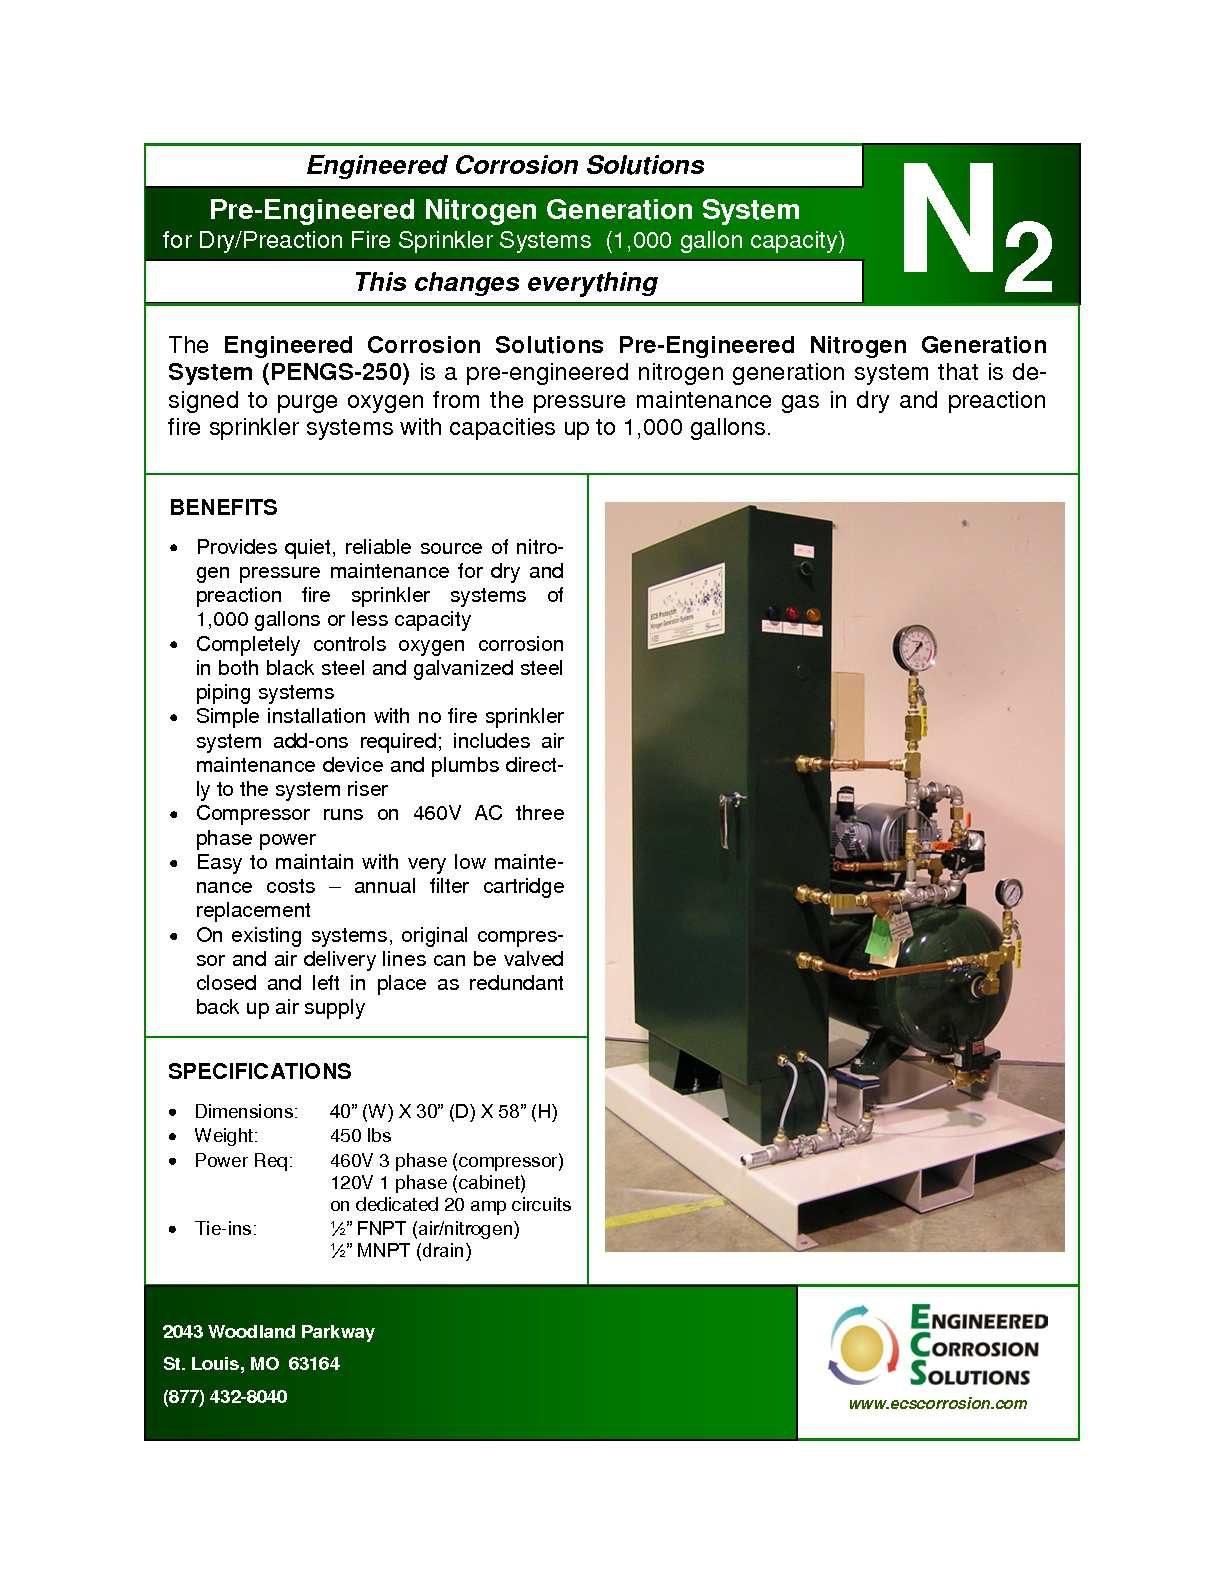 Calamo Pengs 250 Engineered Corrosion Solutions Pre Ampcircuits Nitrogen Generator For Dry And Preaction Fire Sprinkler Systems